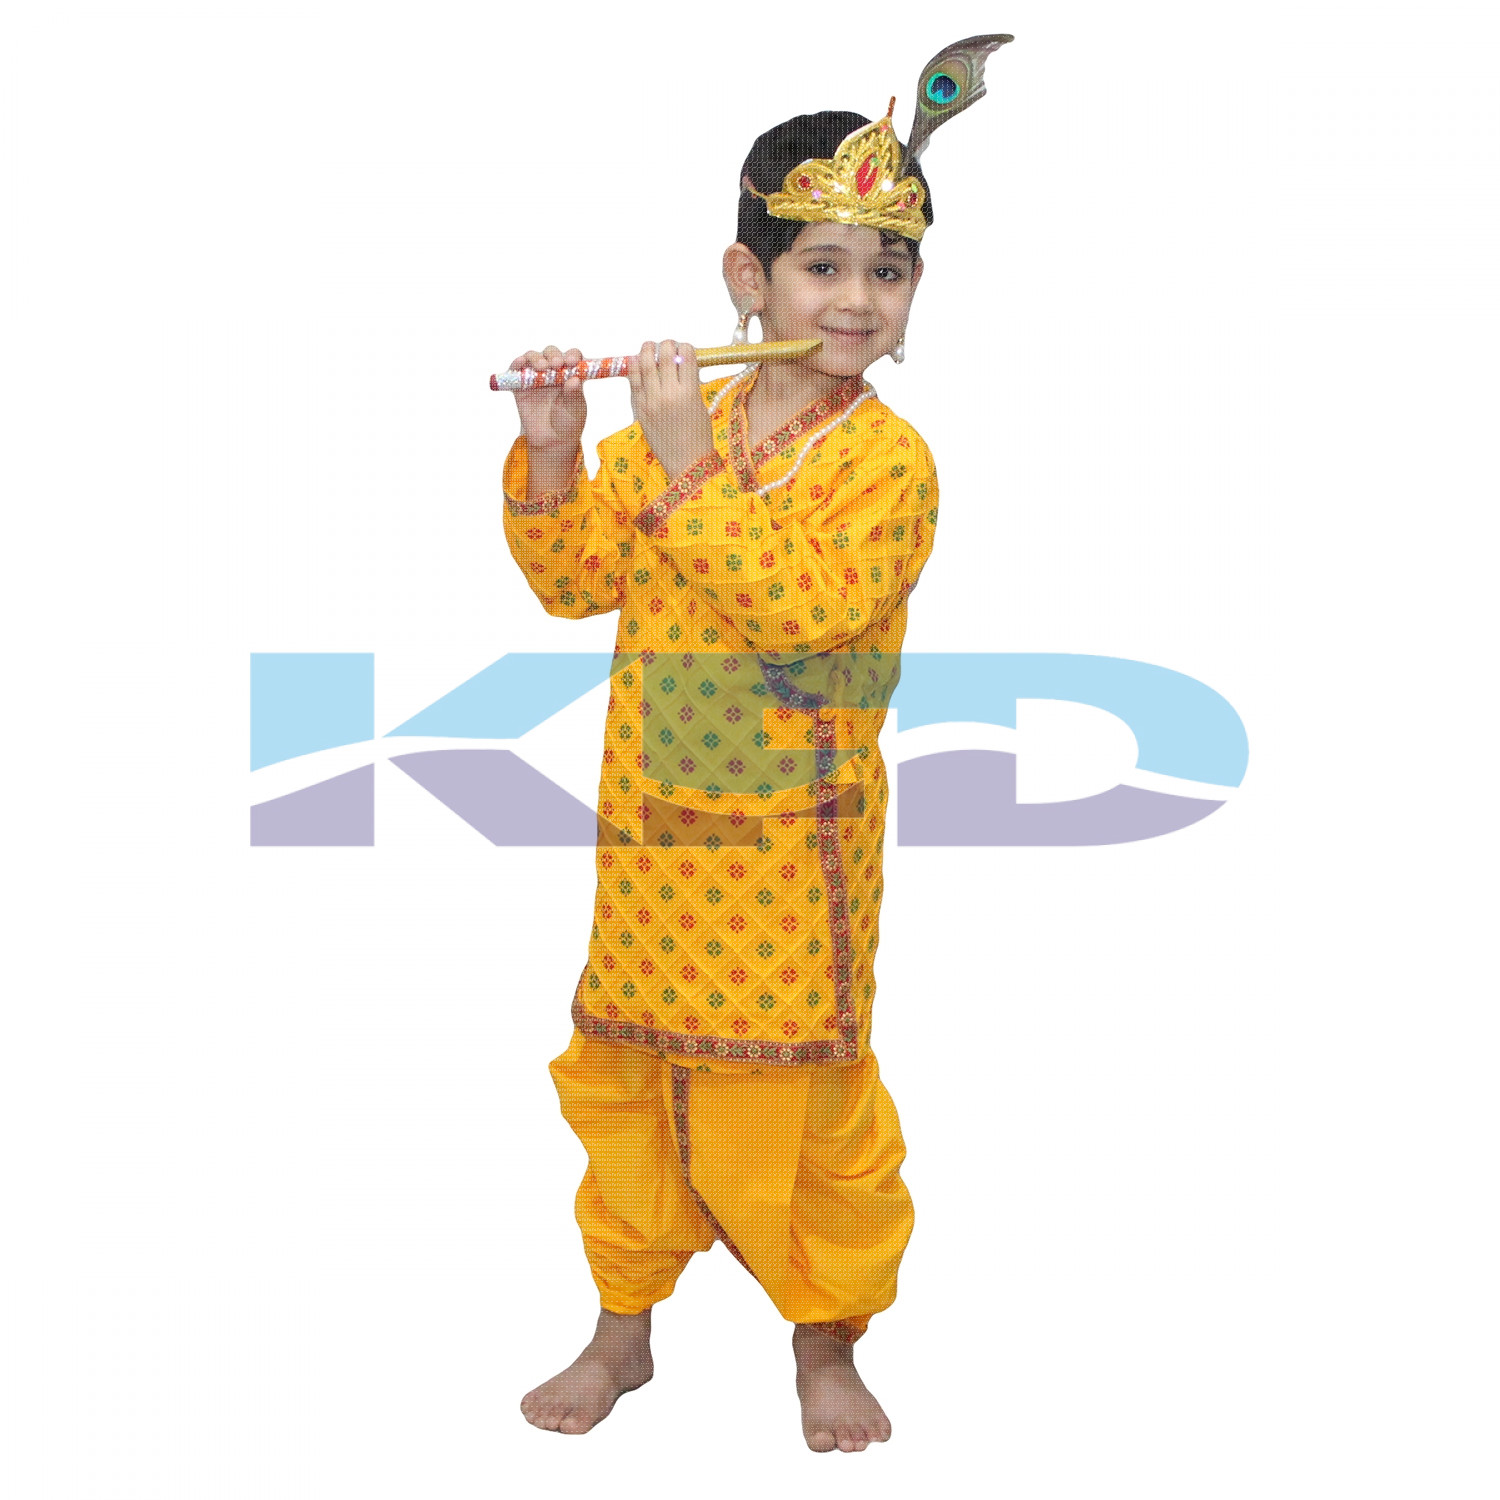 Krishna Printed In Cotton Fabric,Krishnaleela/Janmashtami/Kanha/Mythological Character For Kids School Annual functionTtheme Party/Competition/Stage Shows Dress